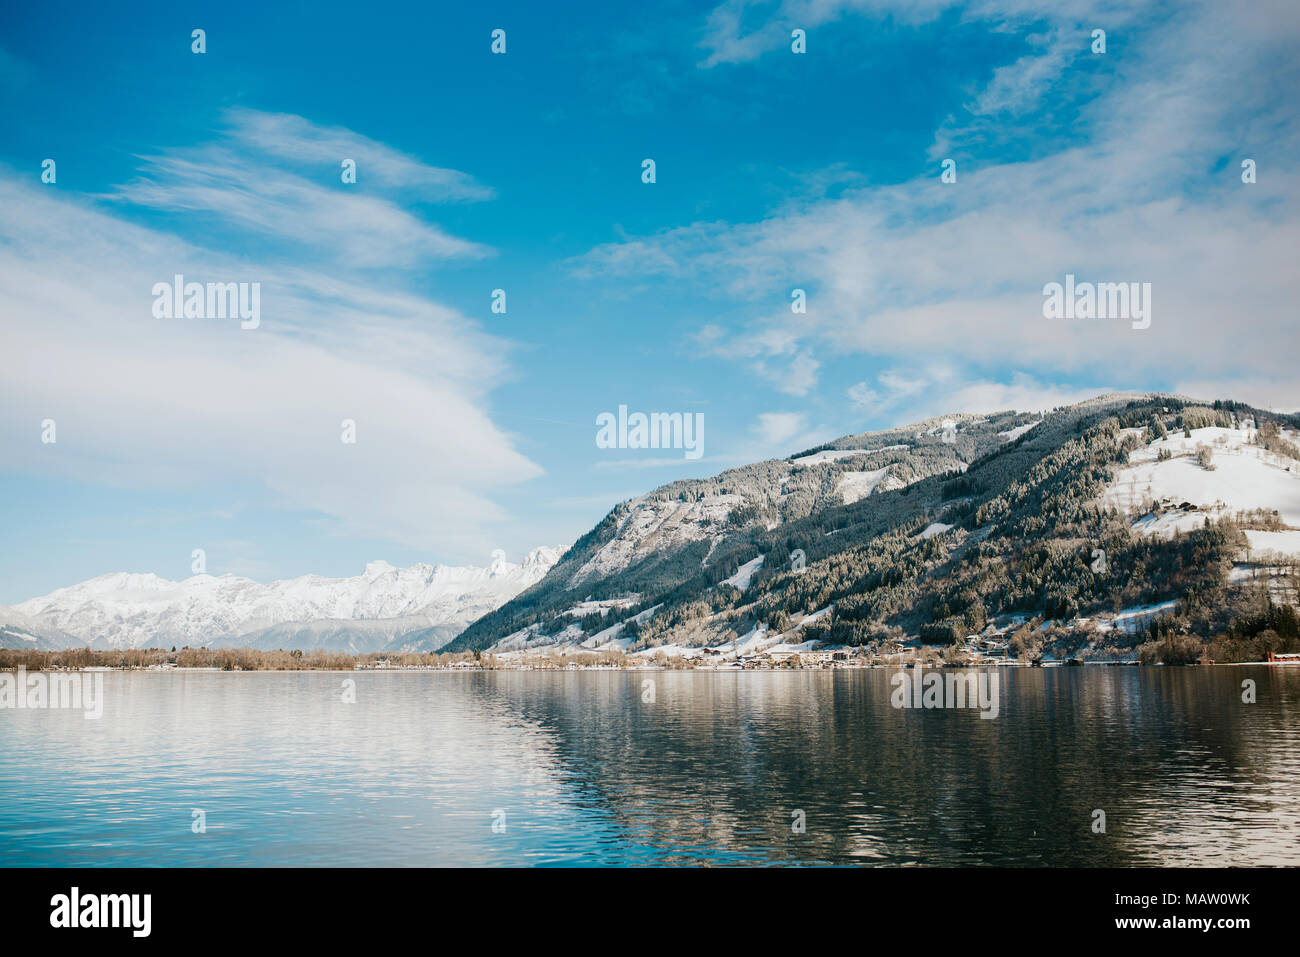 Zell am See in Austria - Stock Image